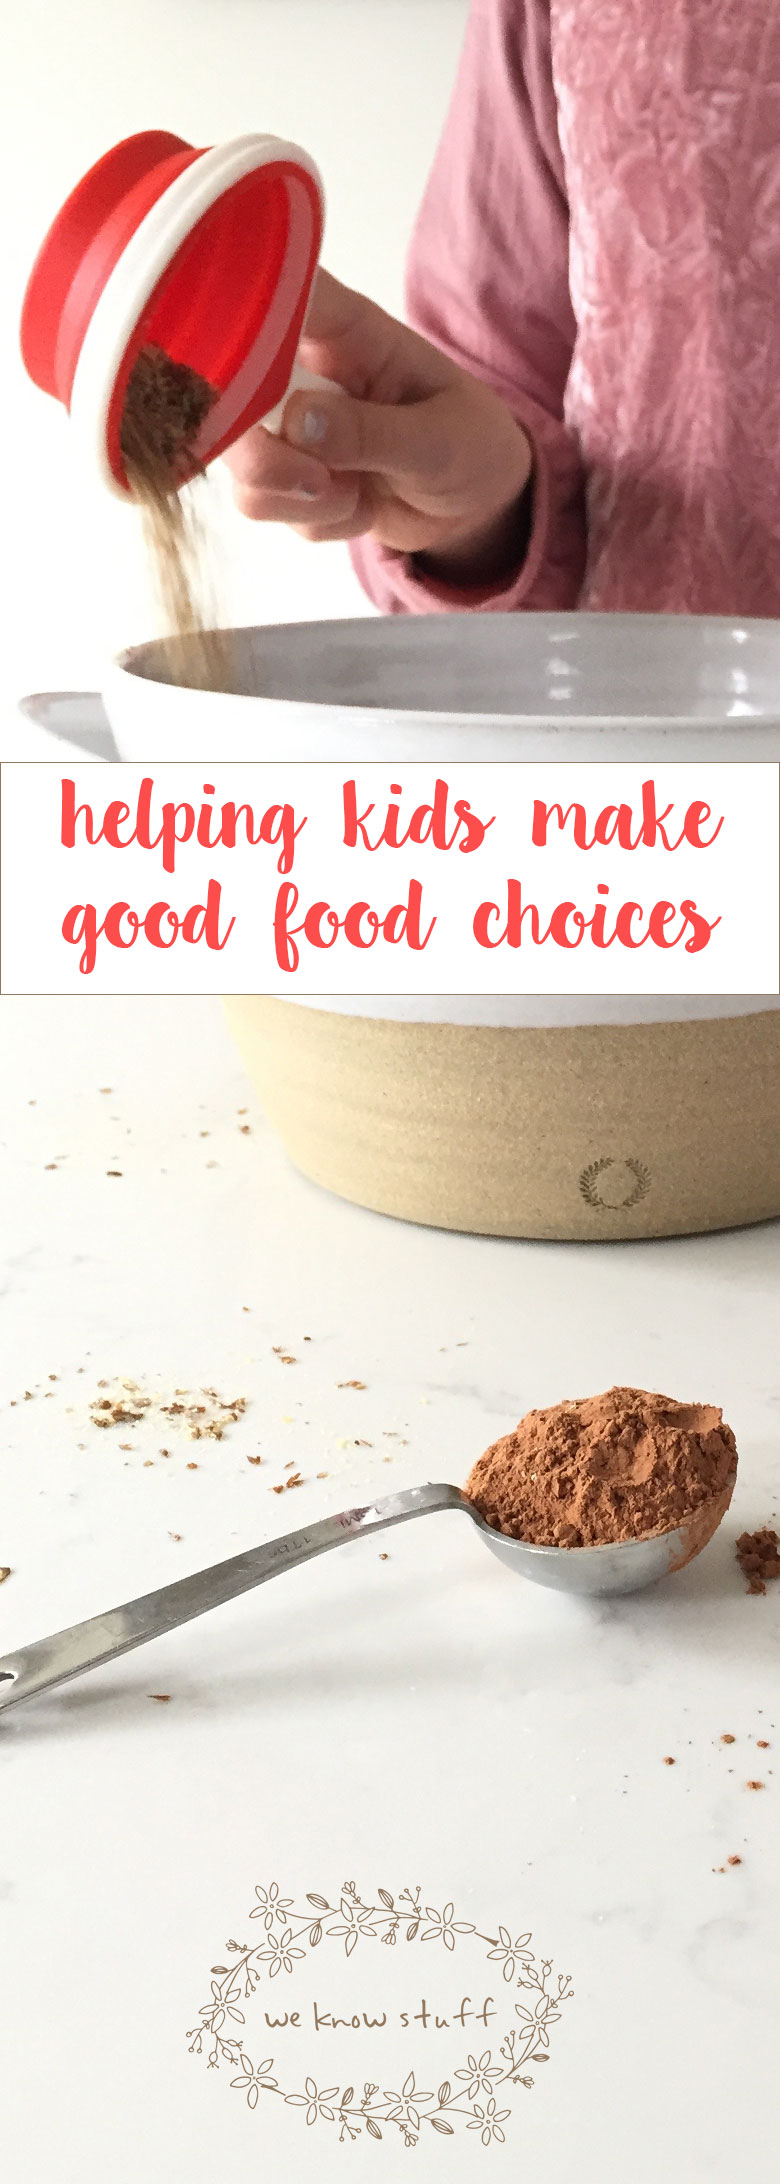 Learn how teaching kidsmake good choices can improve their diet this holiday season.